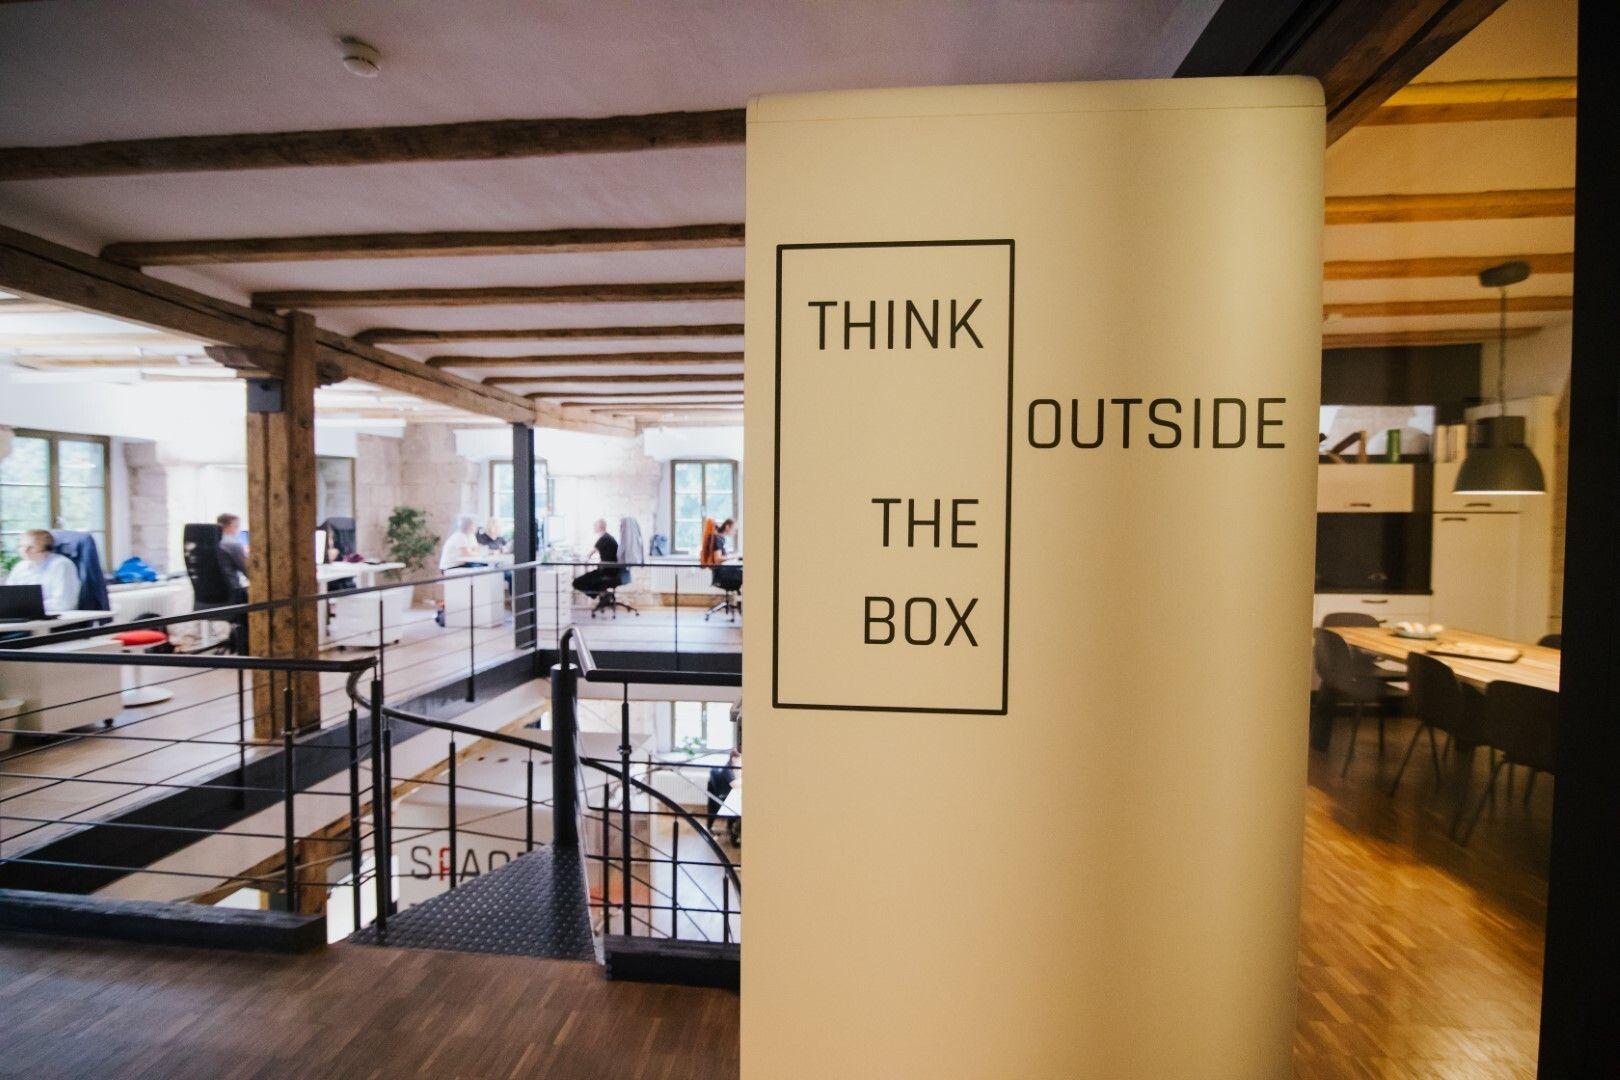 Are you ready to think outside the box?